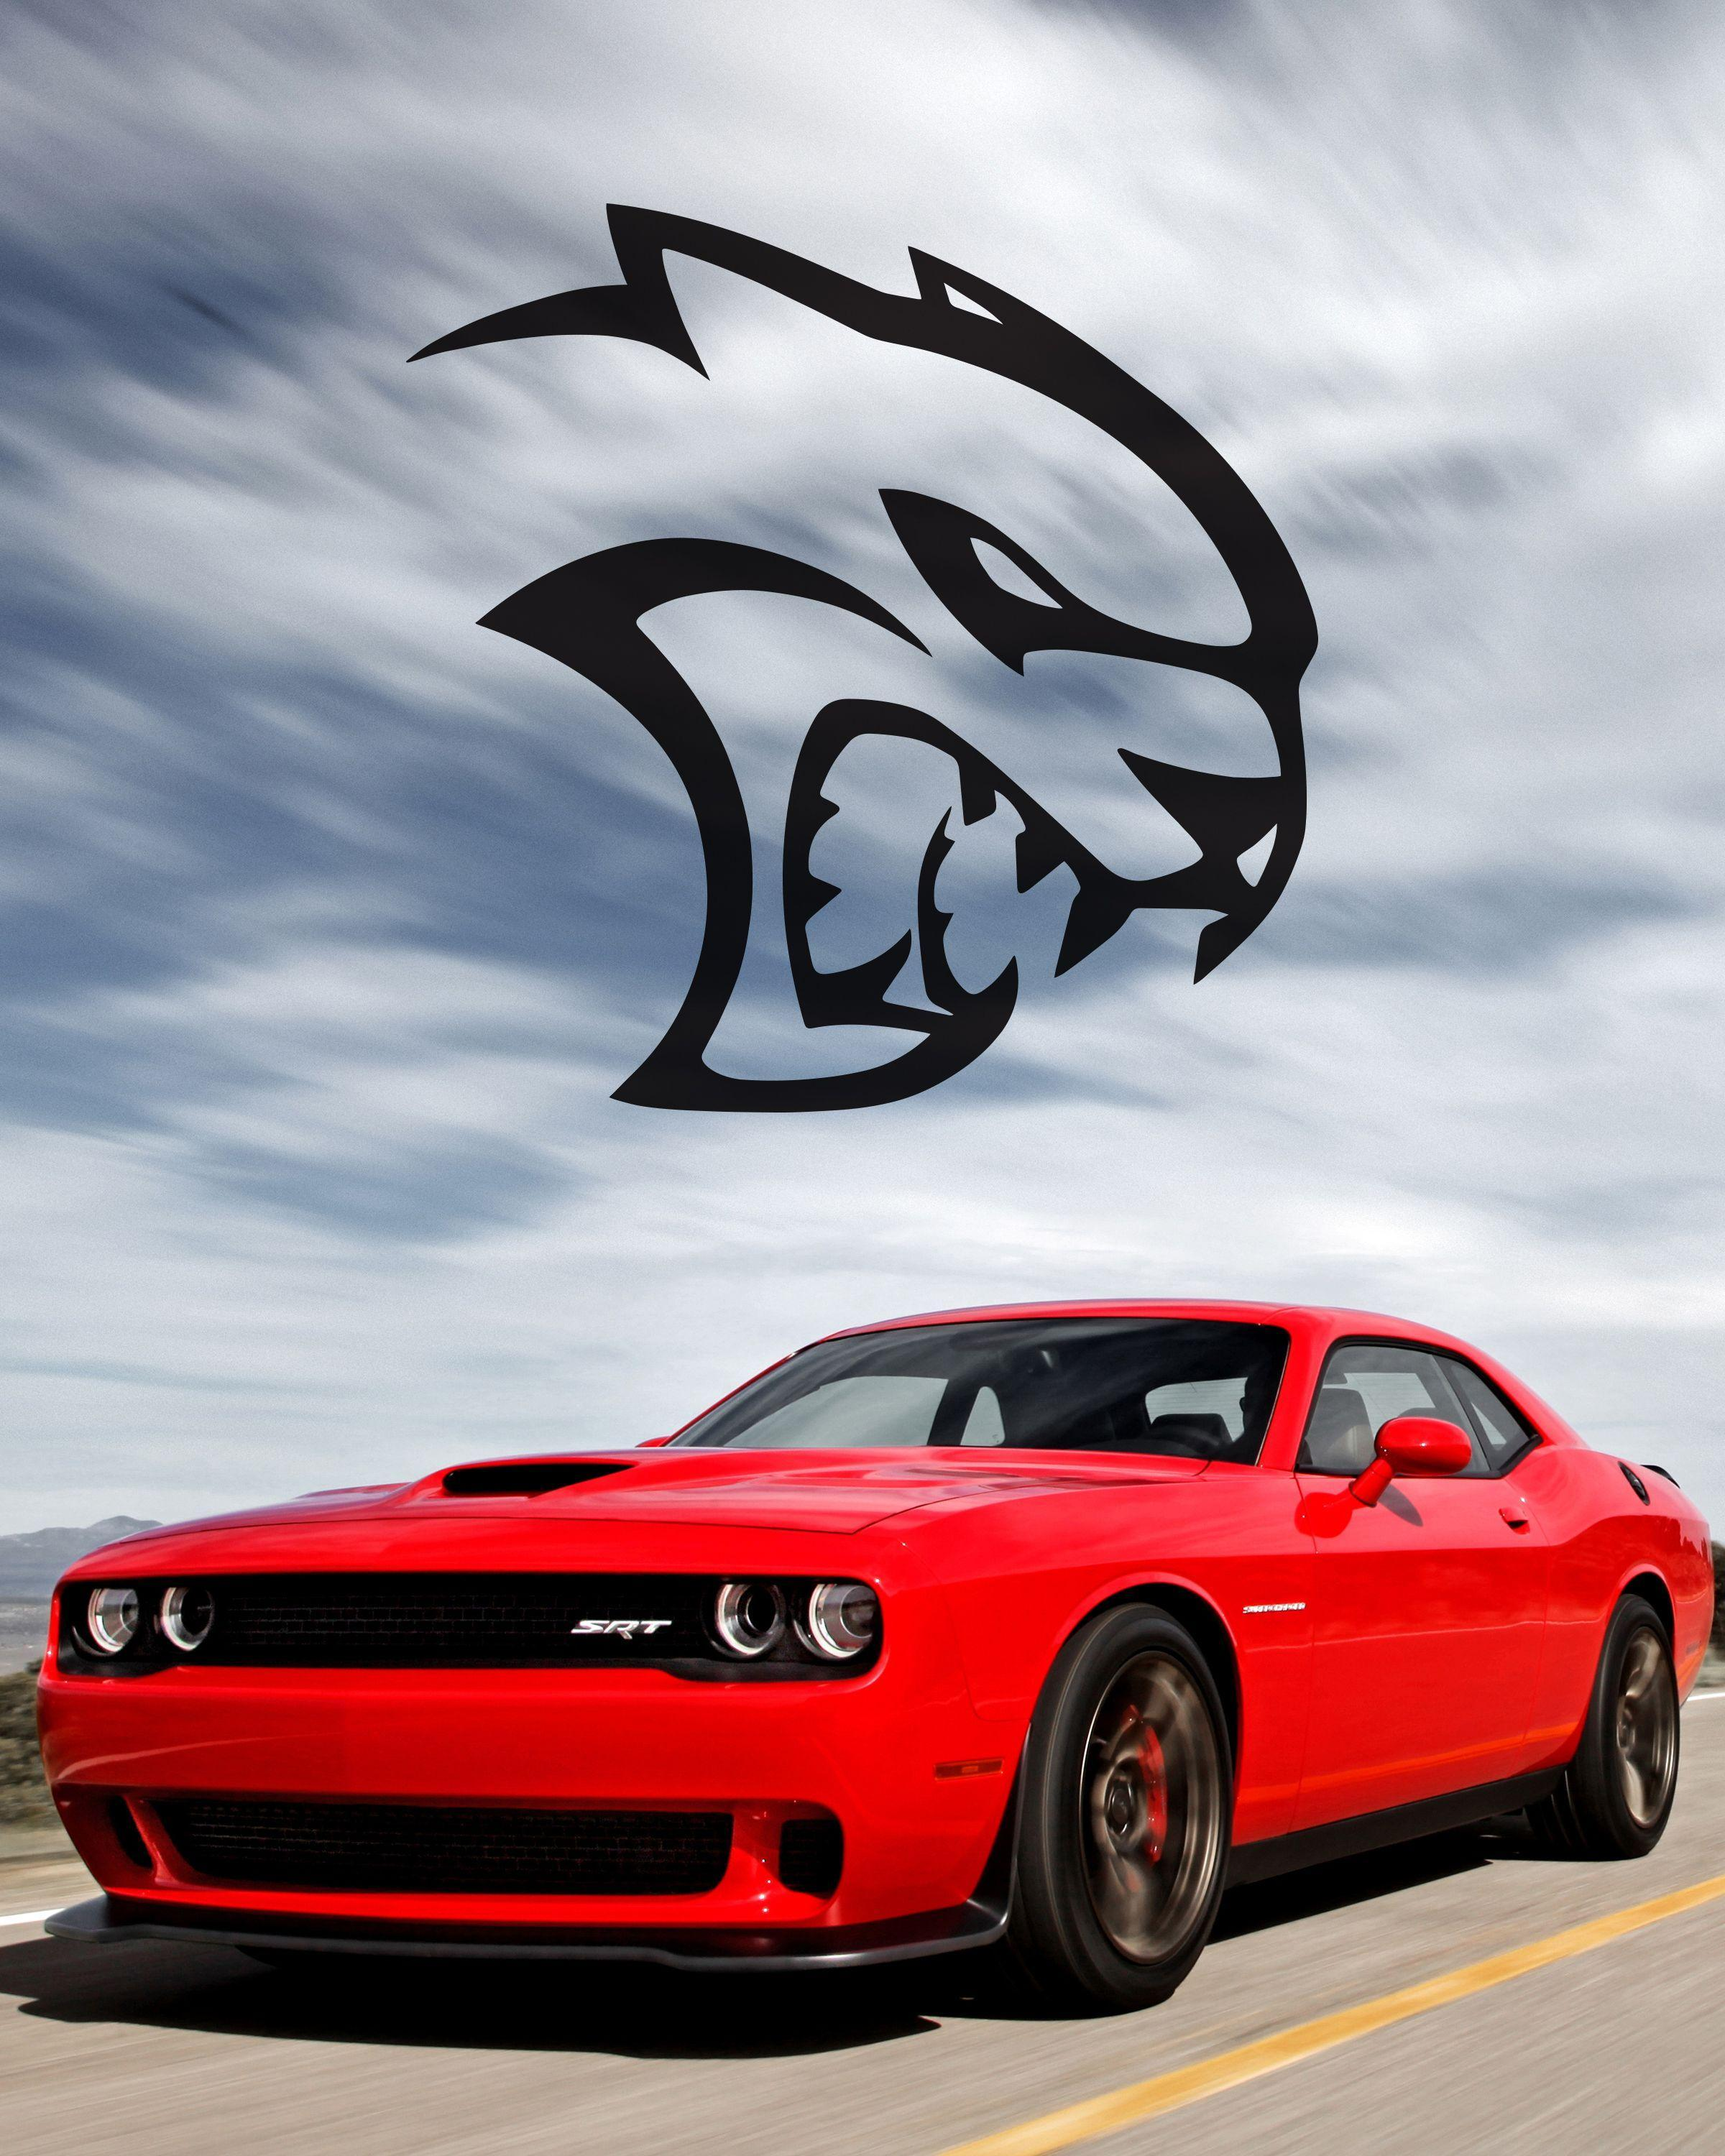 When a build combines two of the car world's greatest treasures, it's sure to raise some eyebrows. Dodge Challenger Hellcat Hd Wallpapers Wallpaper Cave